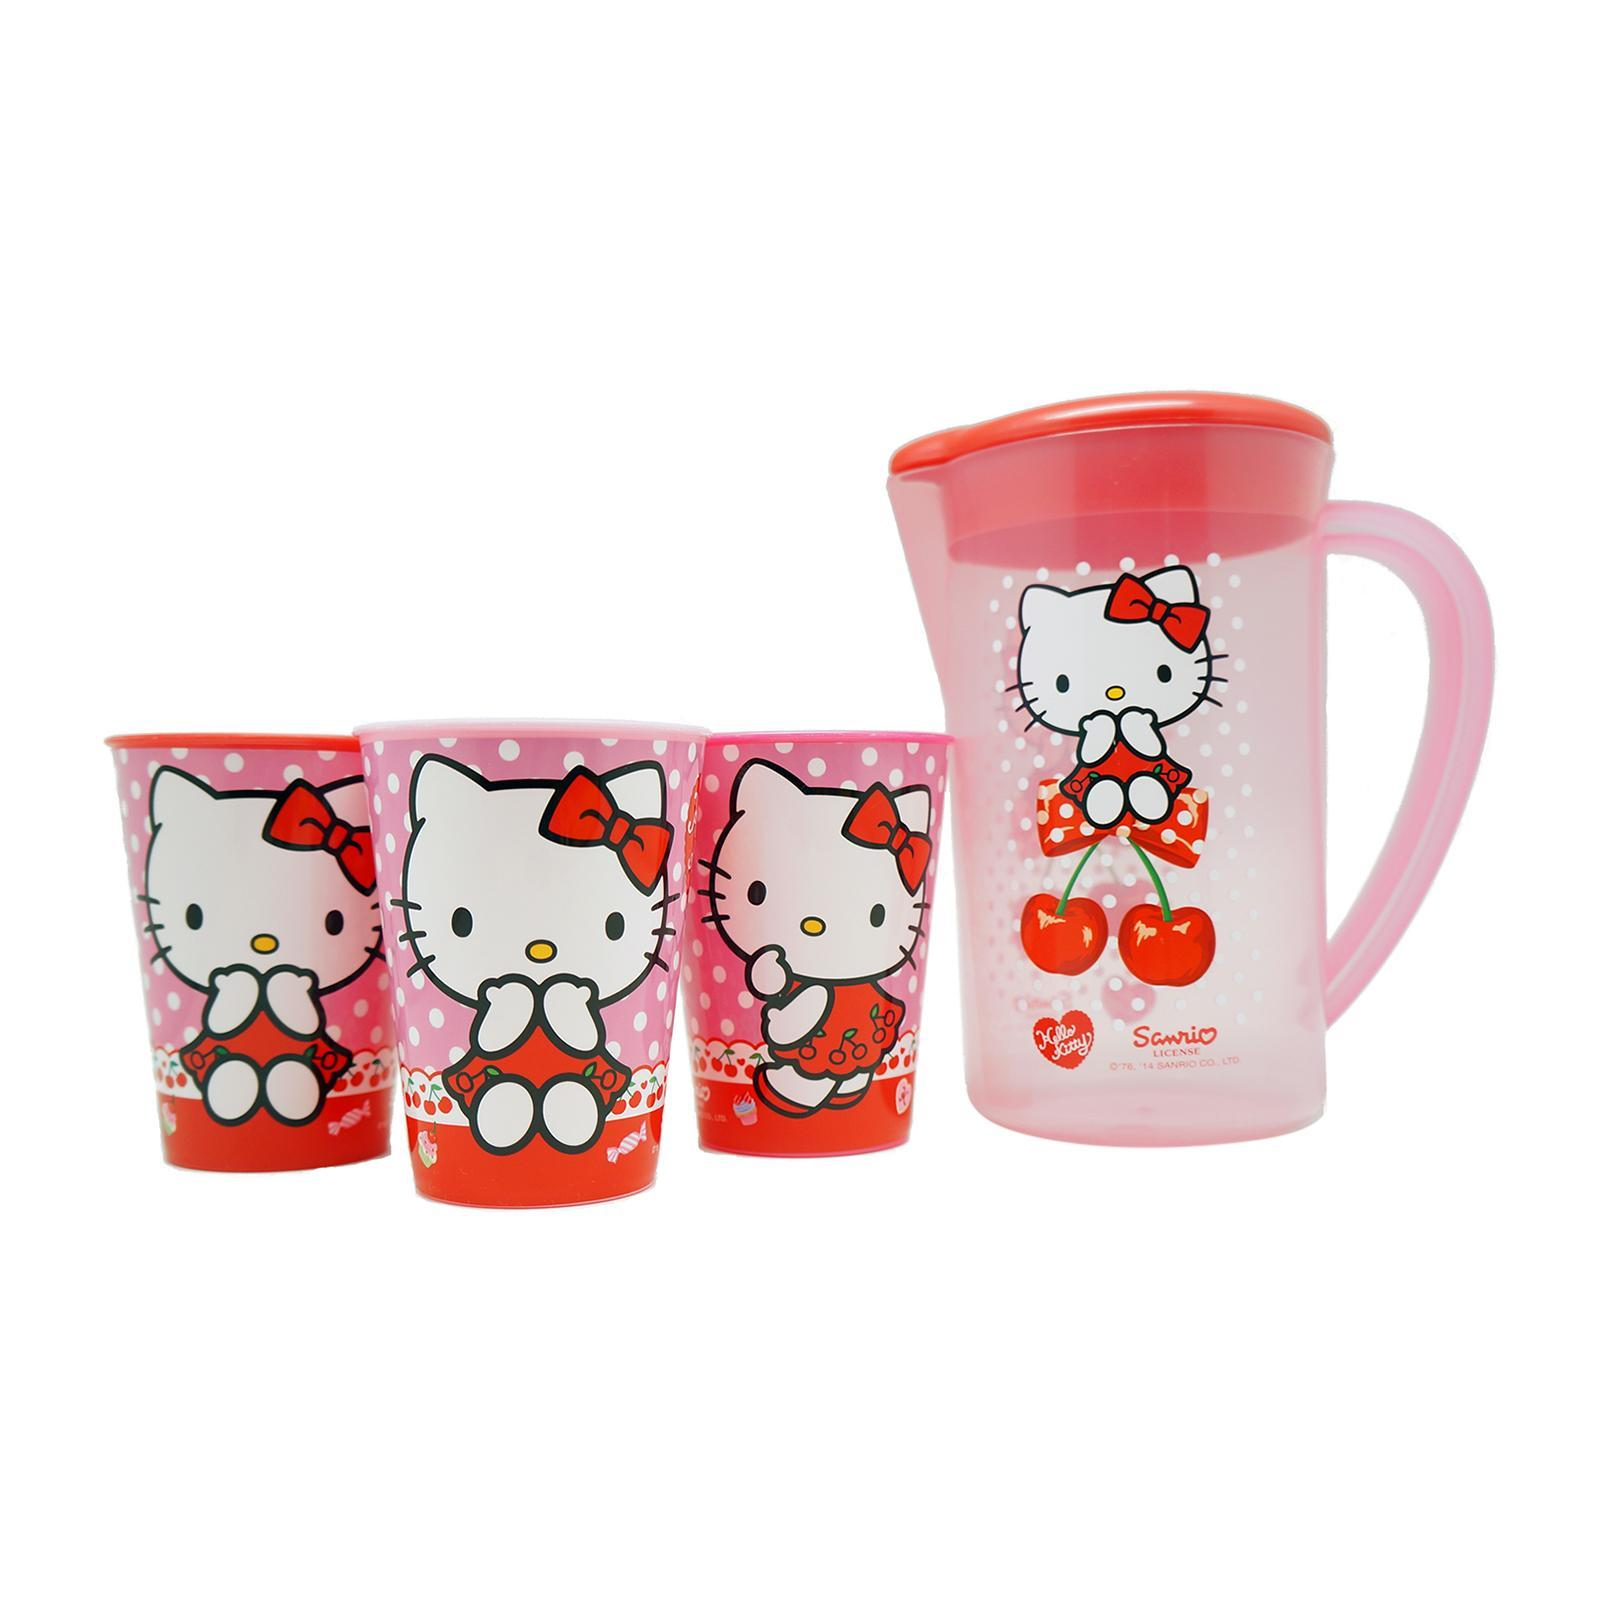 Sanrio Genuine Hello Kitty Pitcher And 3Pcs Tumblers